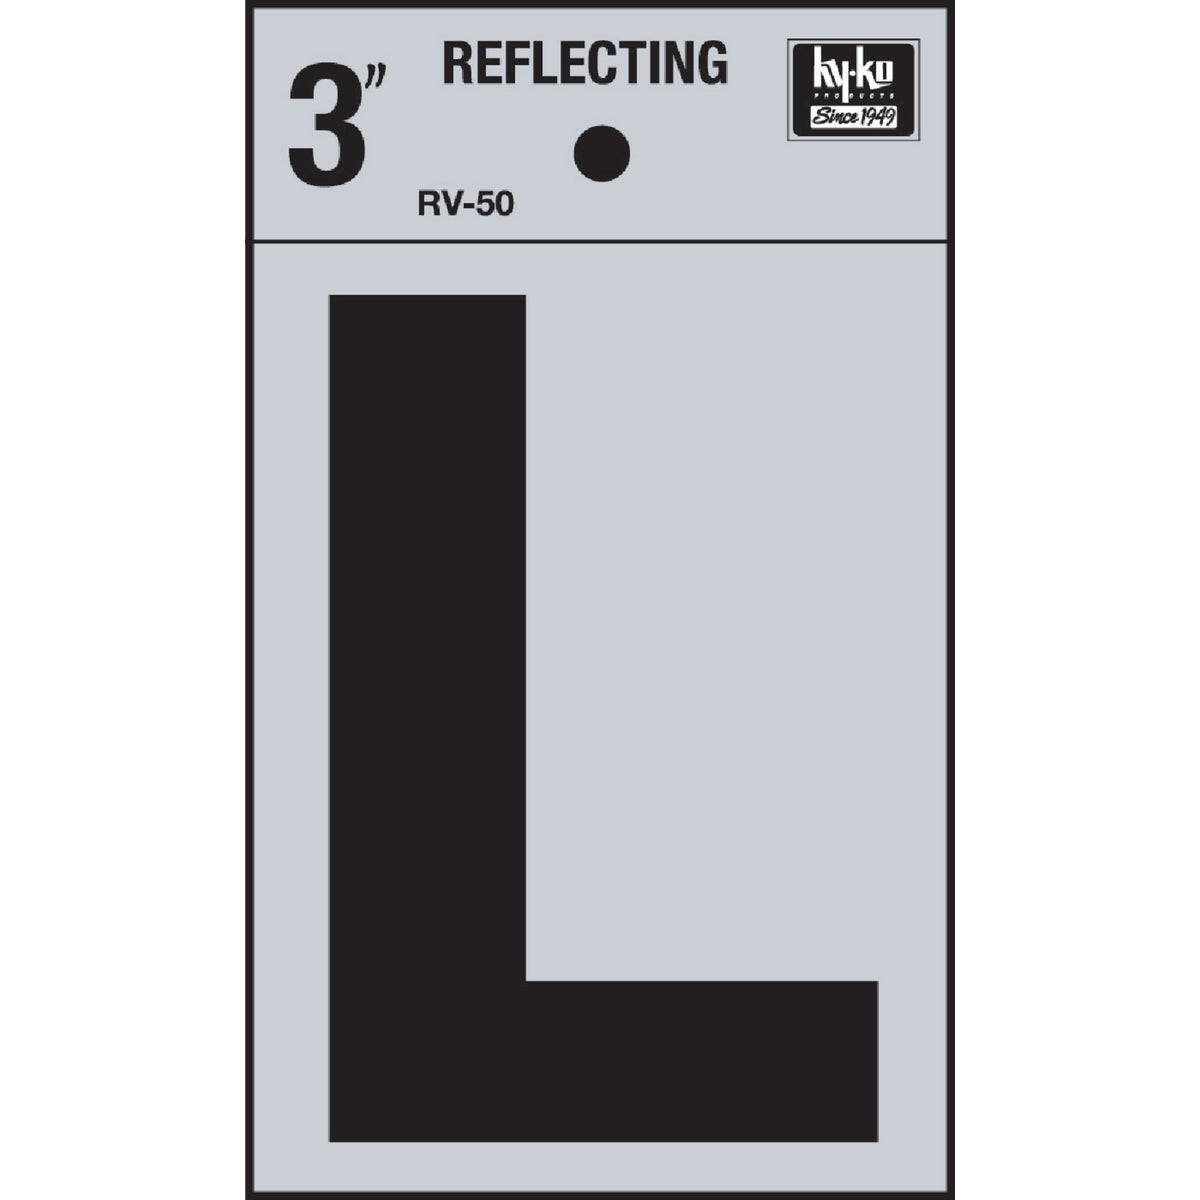 "3"" REFLECT LETTER L - RV-50L by Hy Ko Prods Co"